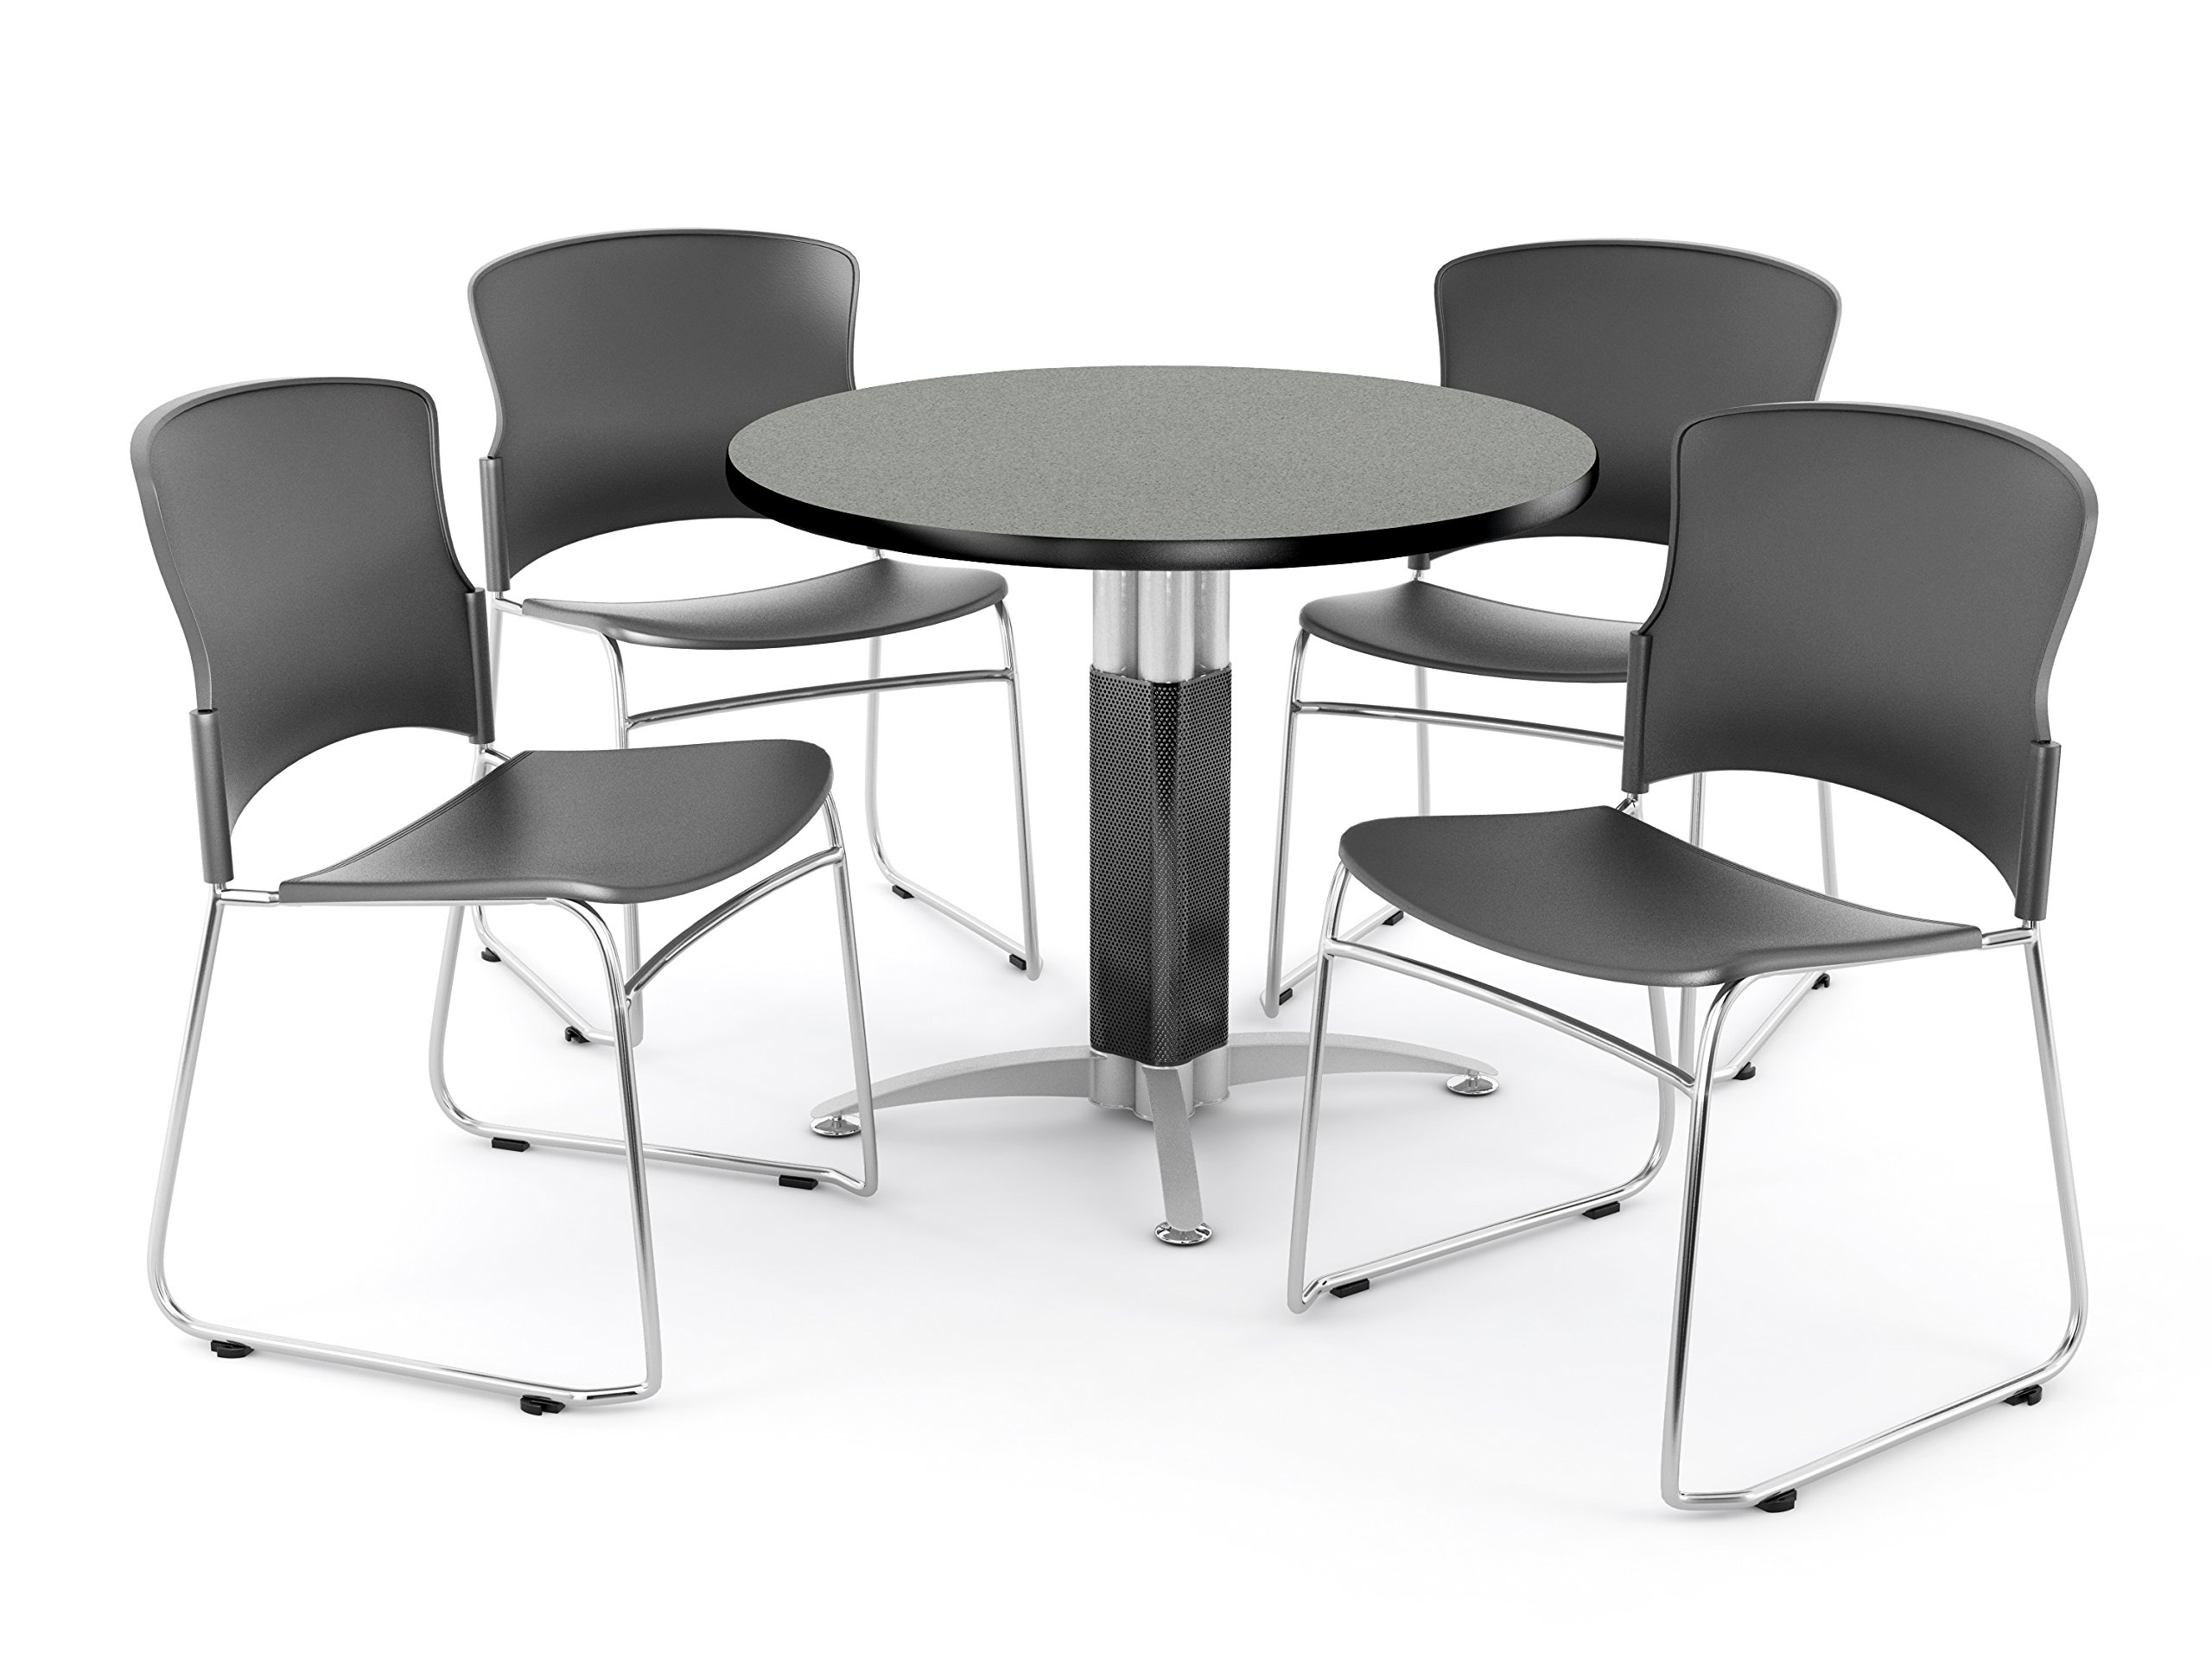 OFM Core Collection Breakroom Set, 42'' Round Metal Mesh Base Multi-purpose Table in Gray Nebula, 4 Multi-use Plastic Stack Chairs in Gray (PKG-BRK-029-0005)